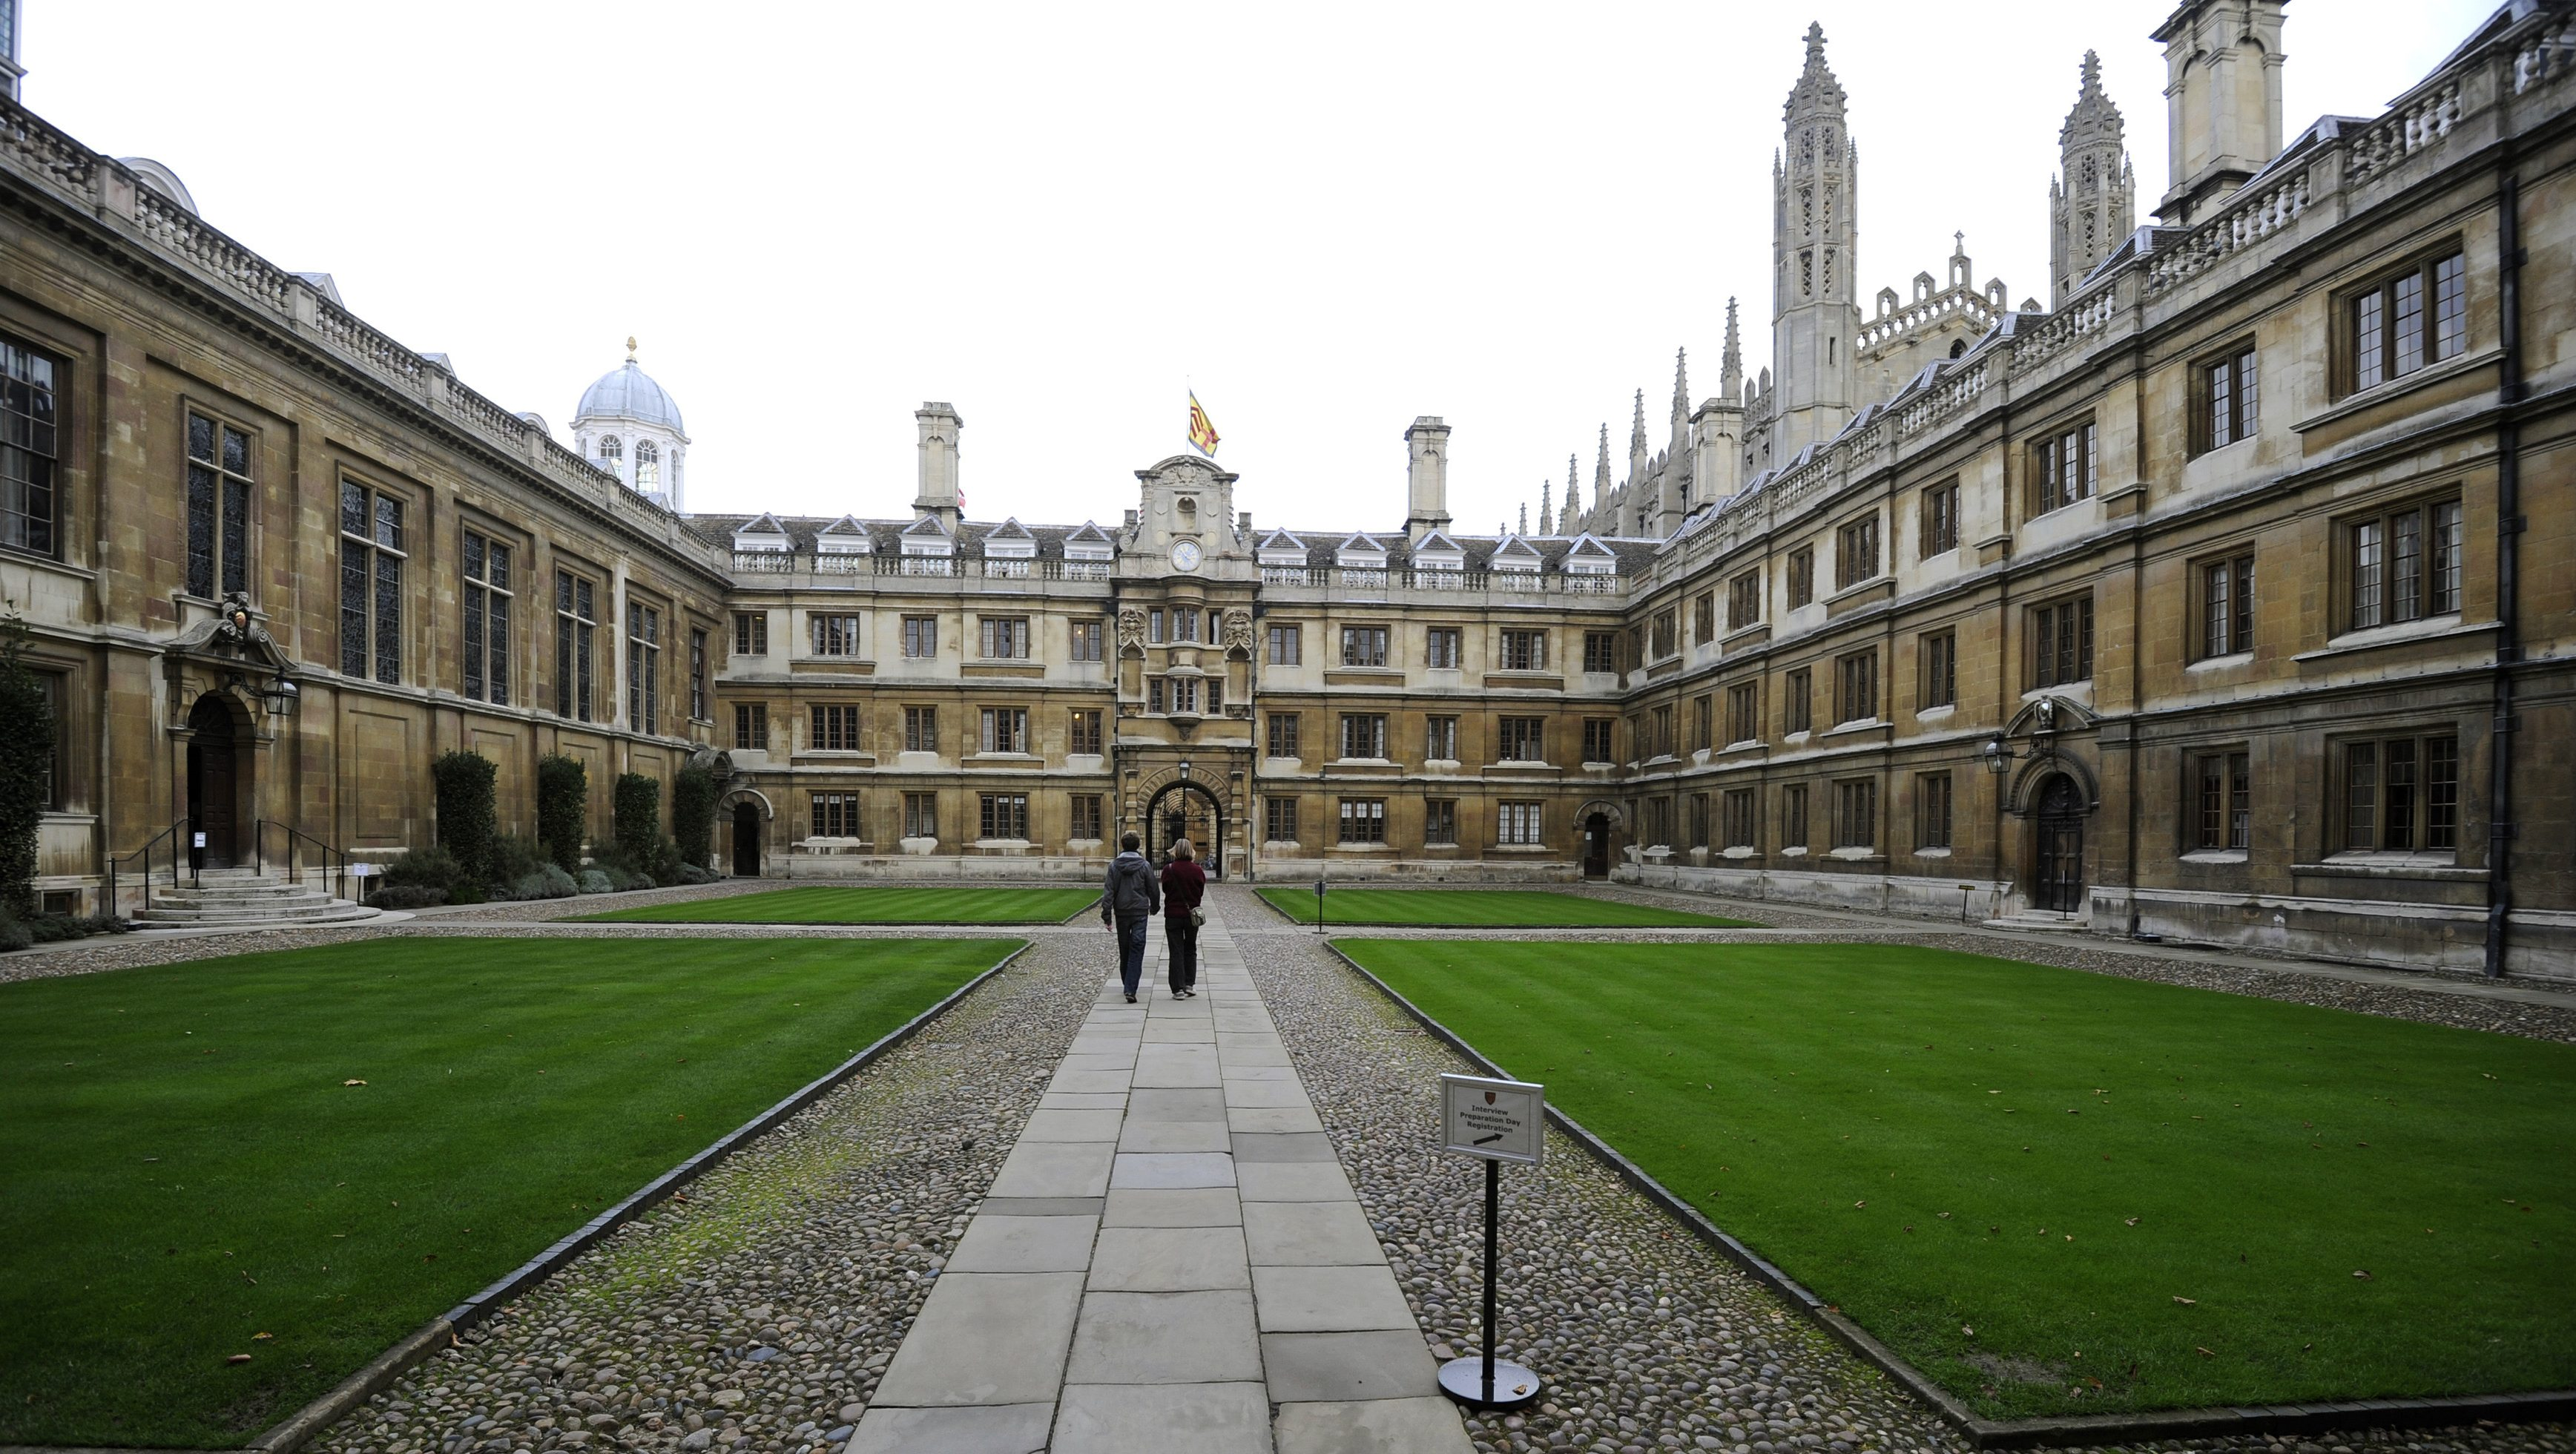 Cambridge University Press' China Quarterly complies with censorship